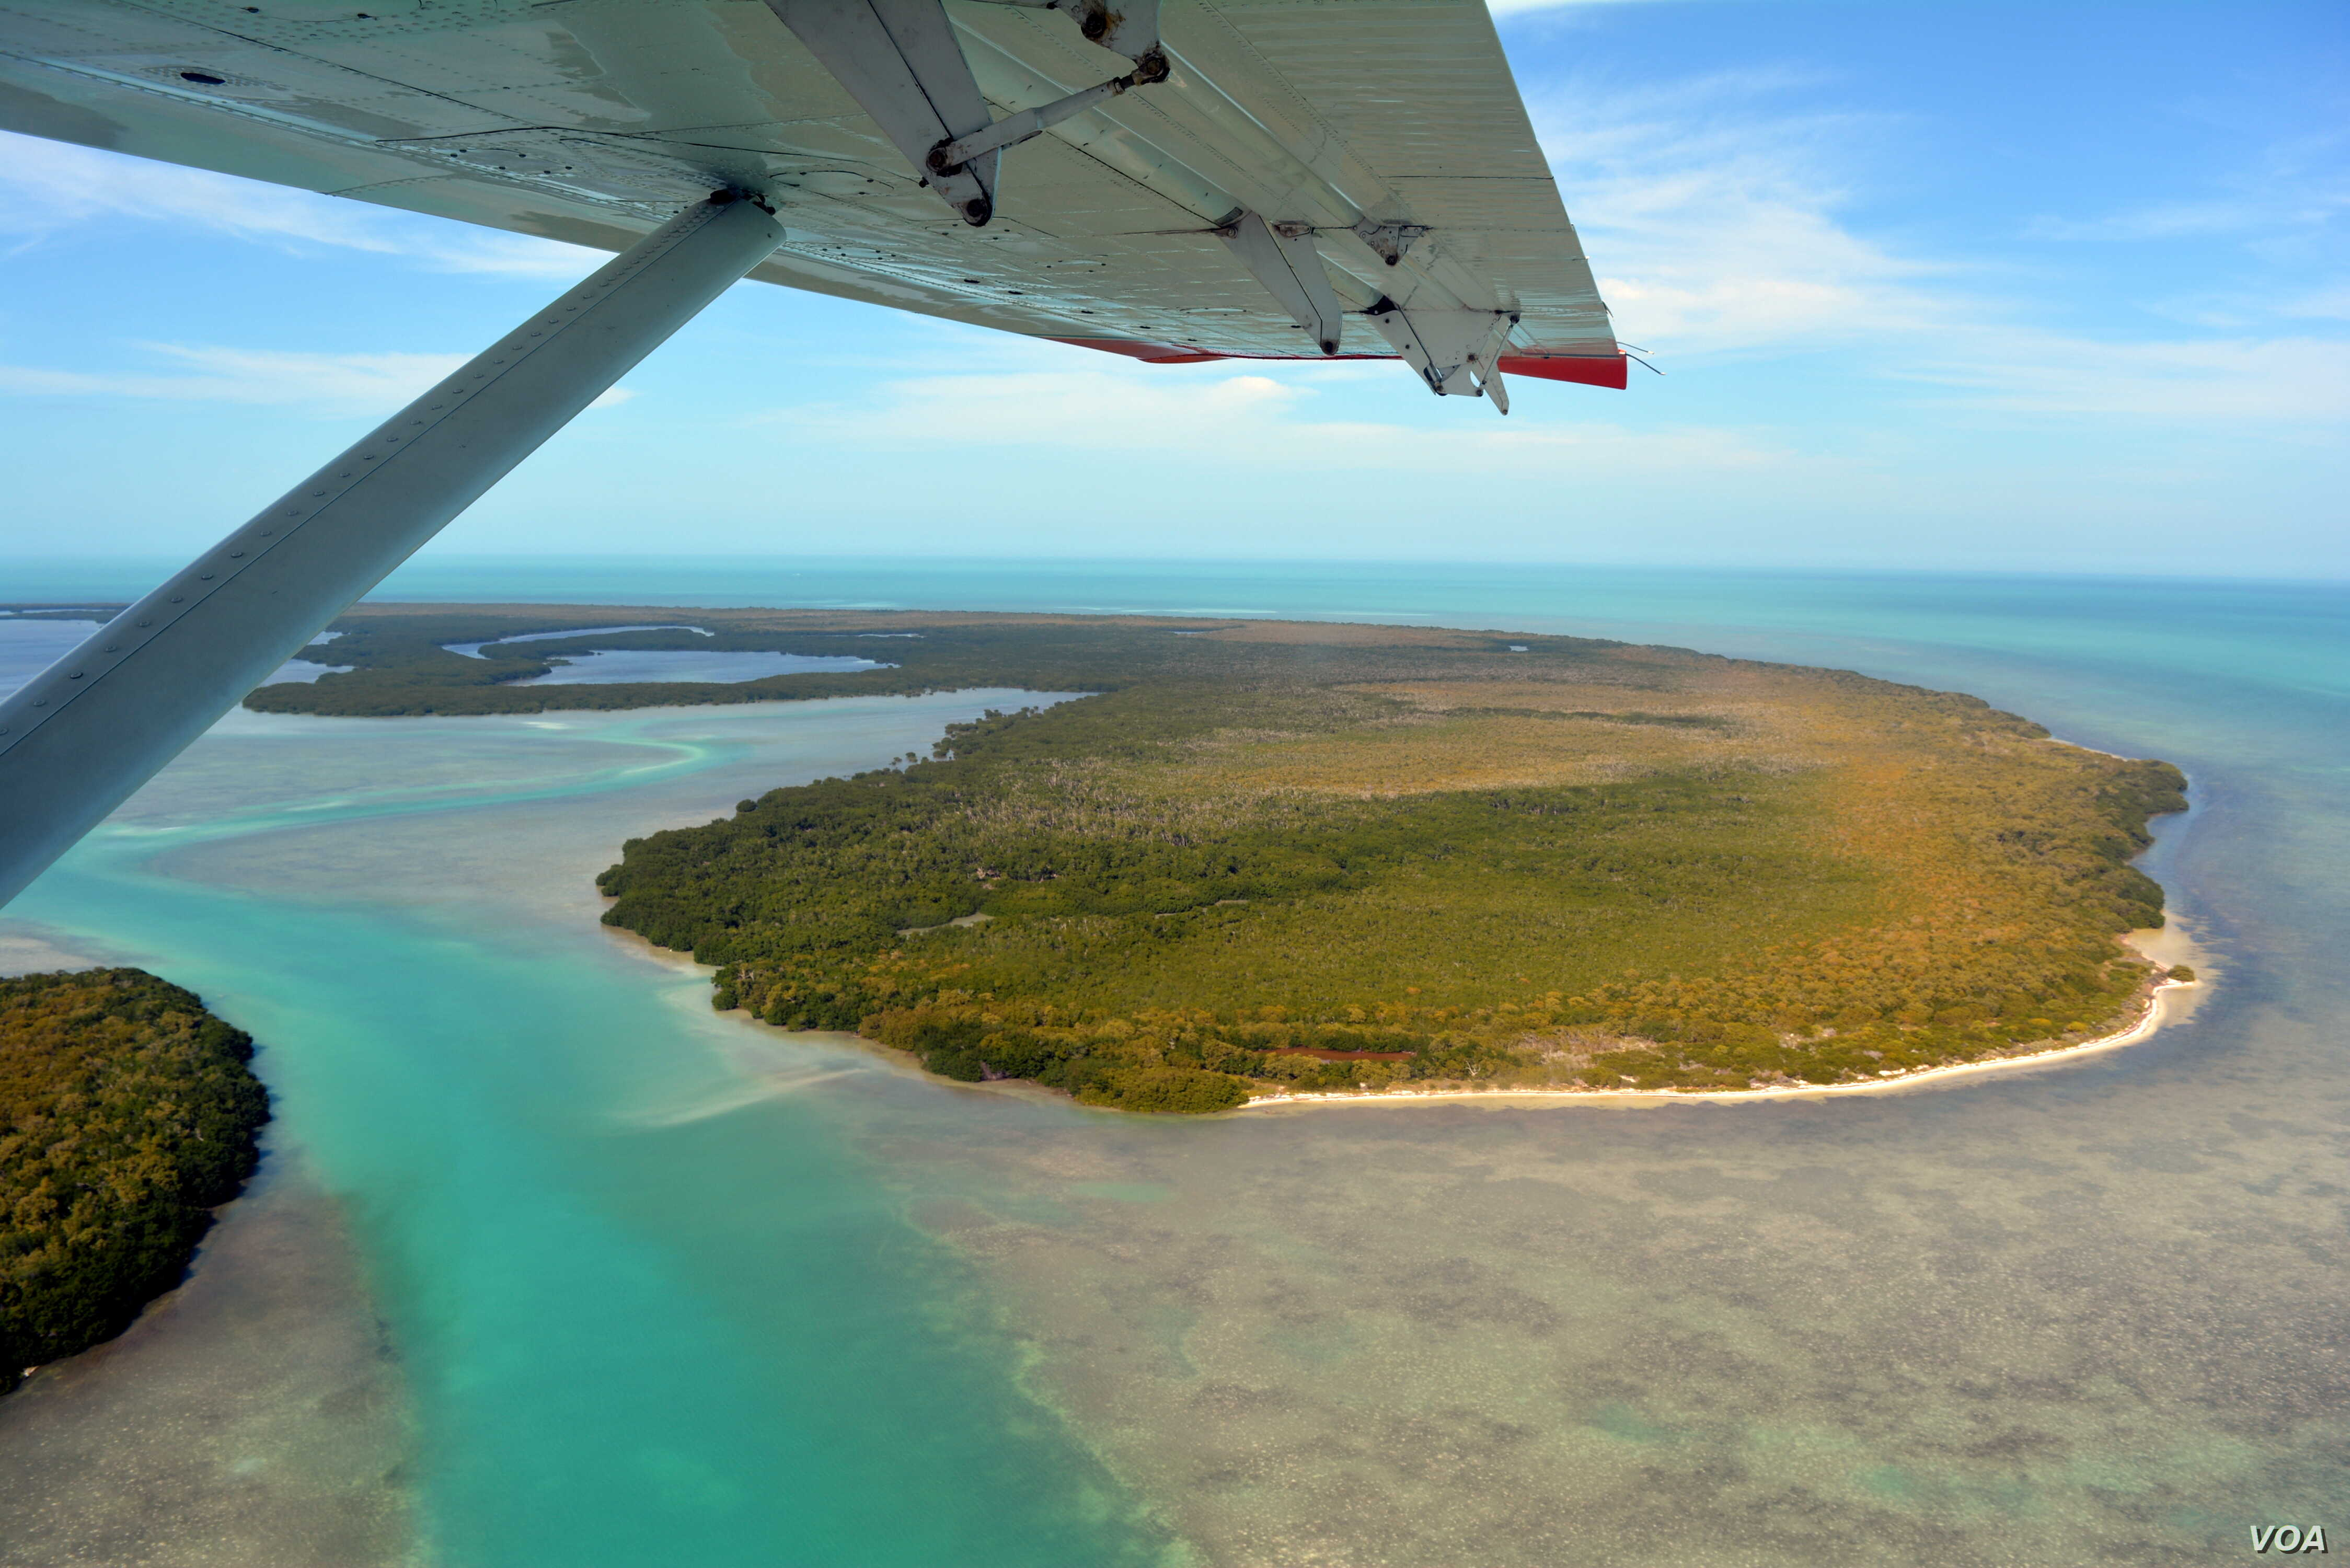 Mikah Meyer enjoyed the beautiful views from the sea plane he was flying in on his way to the Dry Tortugas islands in the Gulf of Mexico.